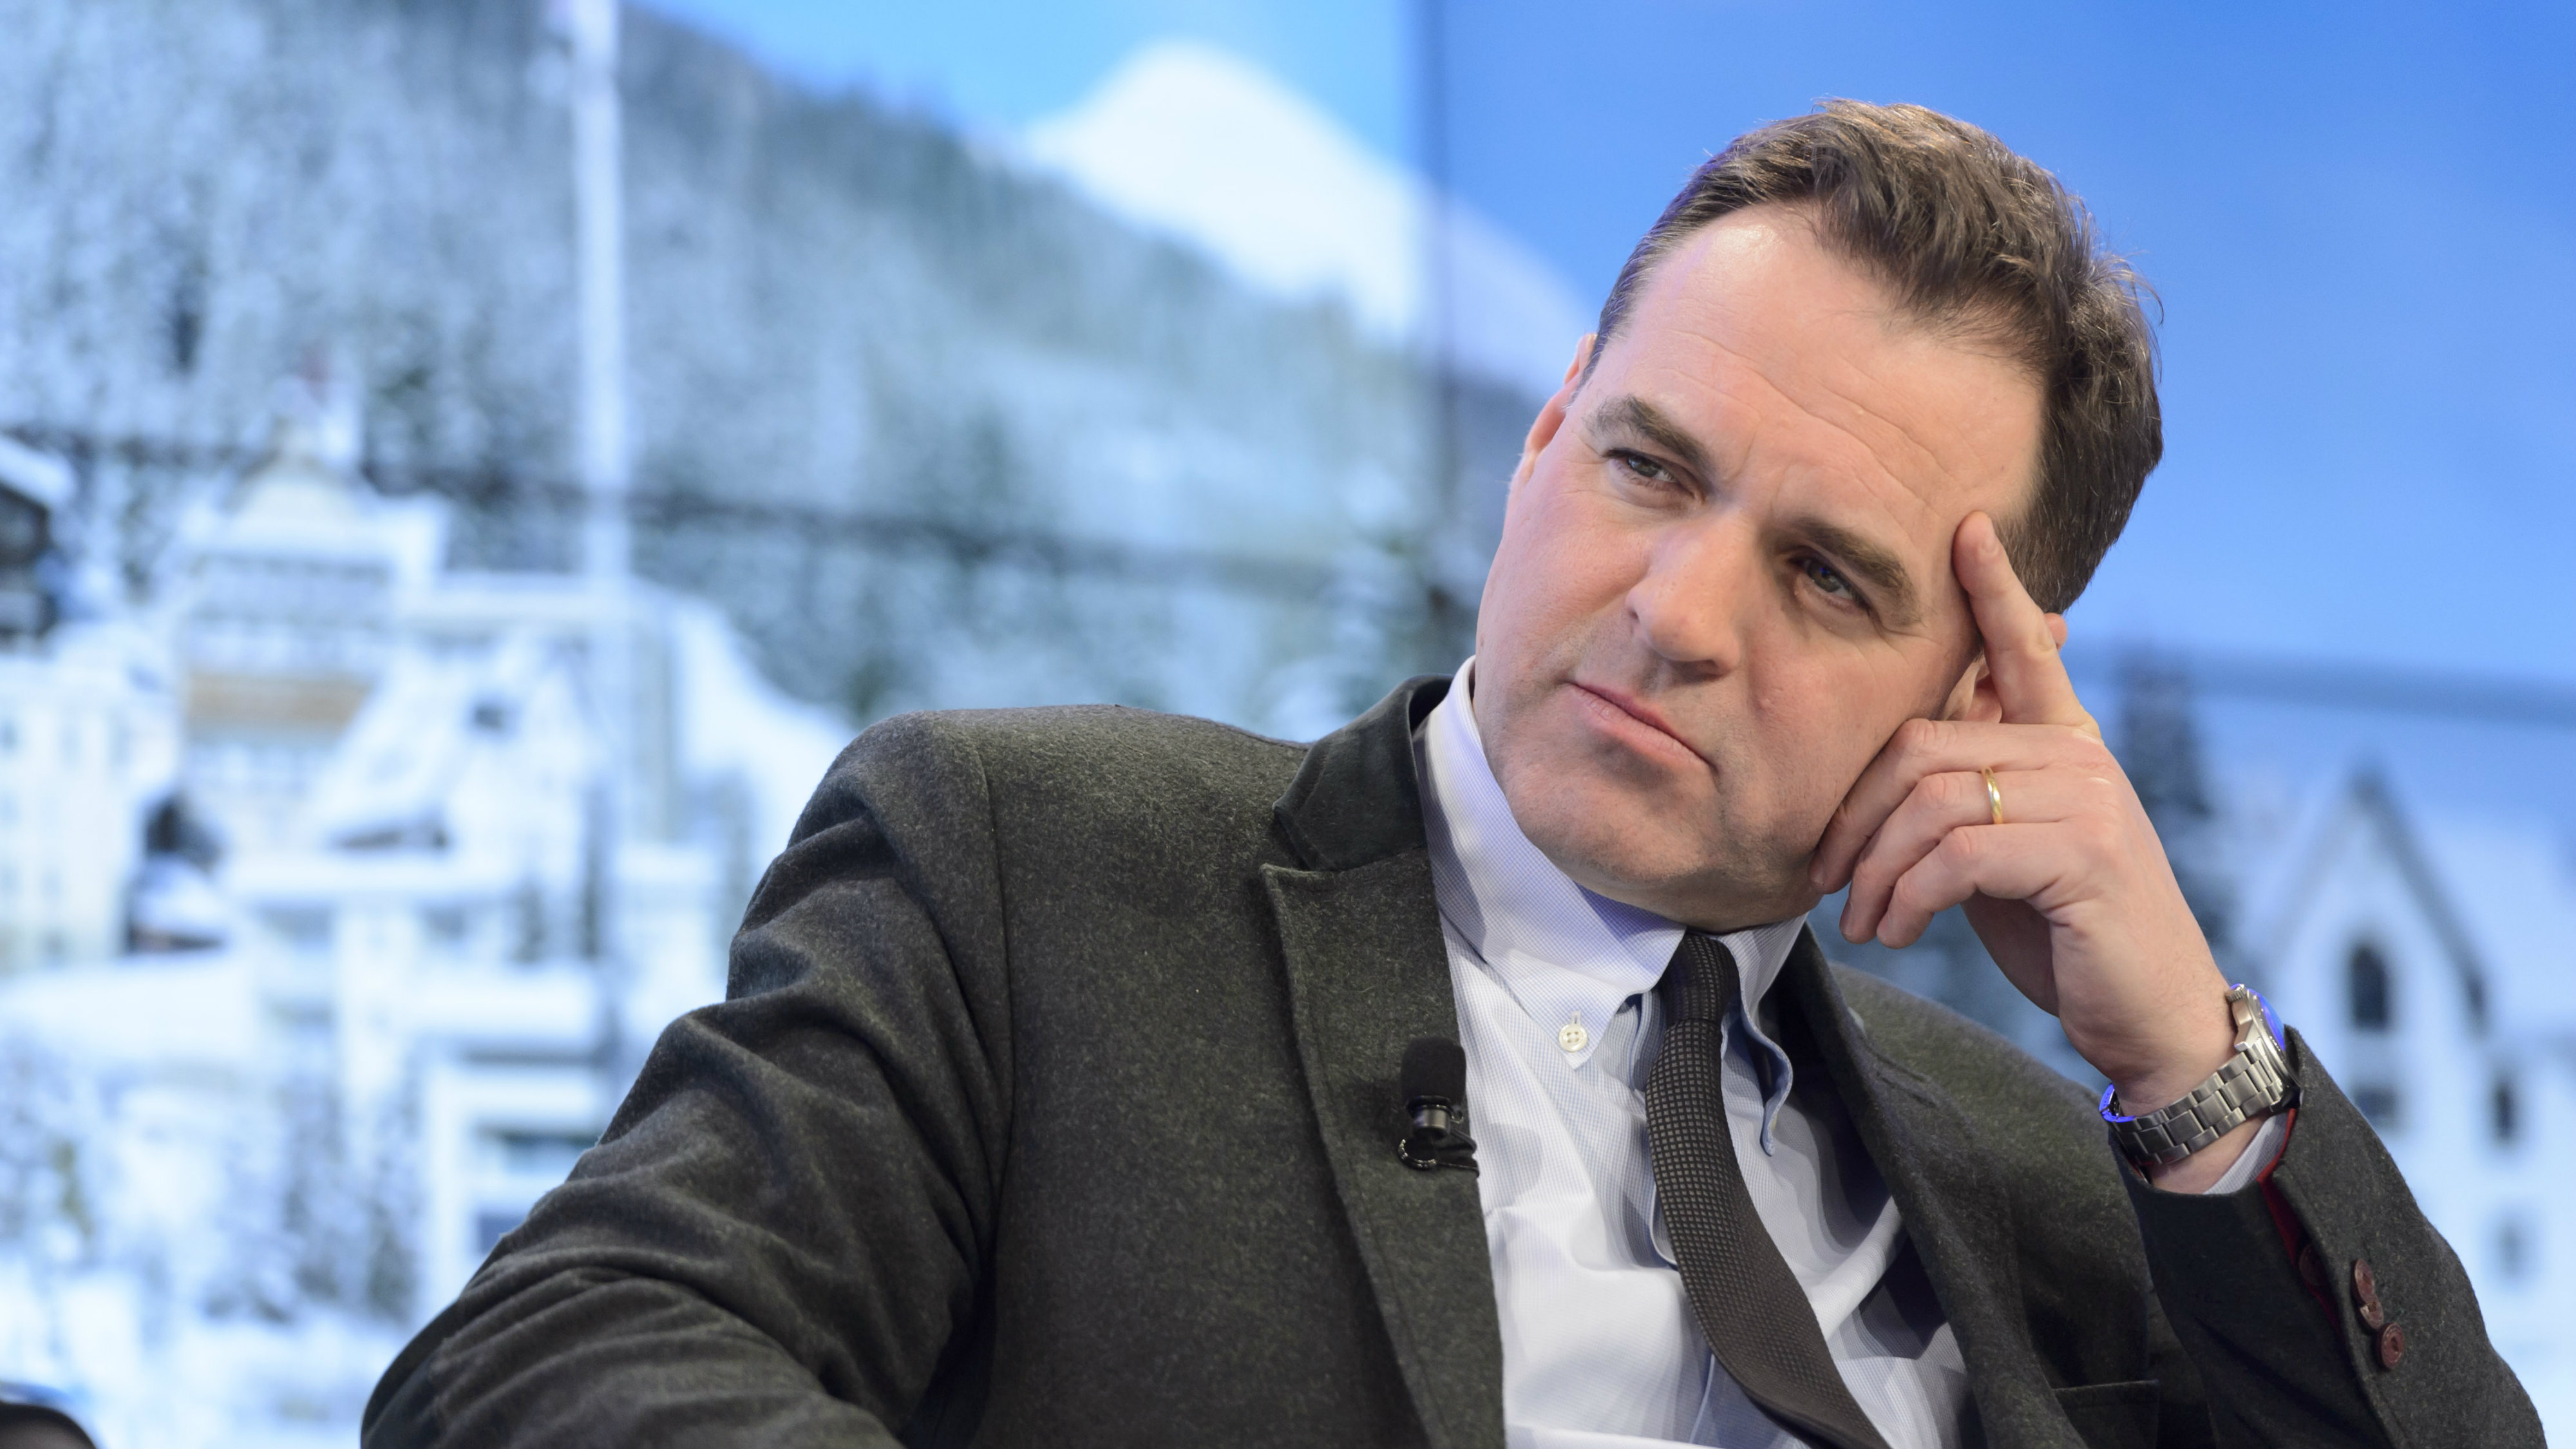 Scottish historian and financial expert Niall Ferguson attends a panel session at the 46th Annual Meeting of the World Economic Forum, WEF, in Davos, Switzerland, 22 January 2016. The overarching theme of the meeting, which is expected to gather some 2,500 leading politicians, UN executives, heads of major corporations, NGO leaders and artists at the annual four-day gathering taking place from 20 to 23 January, is 'Mastering the Fourth Industrial Revolution'.